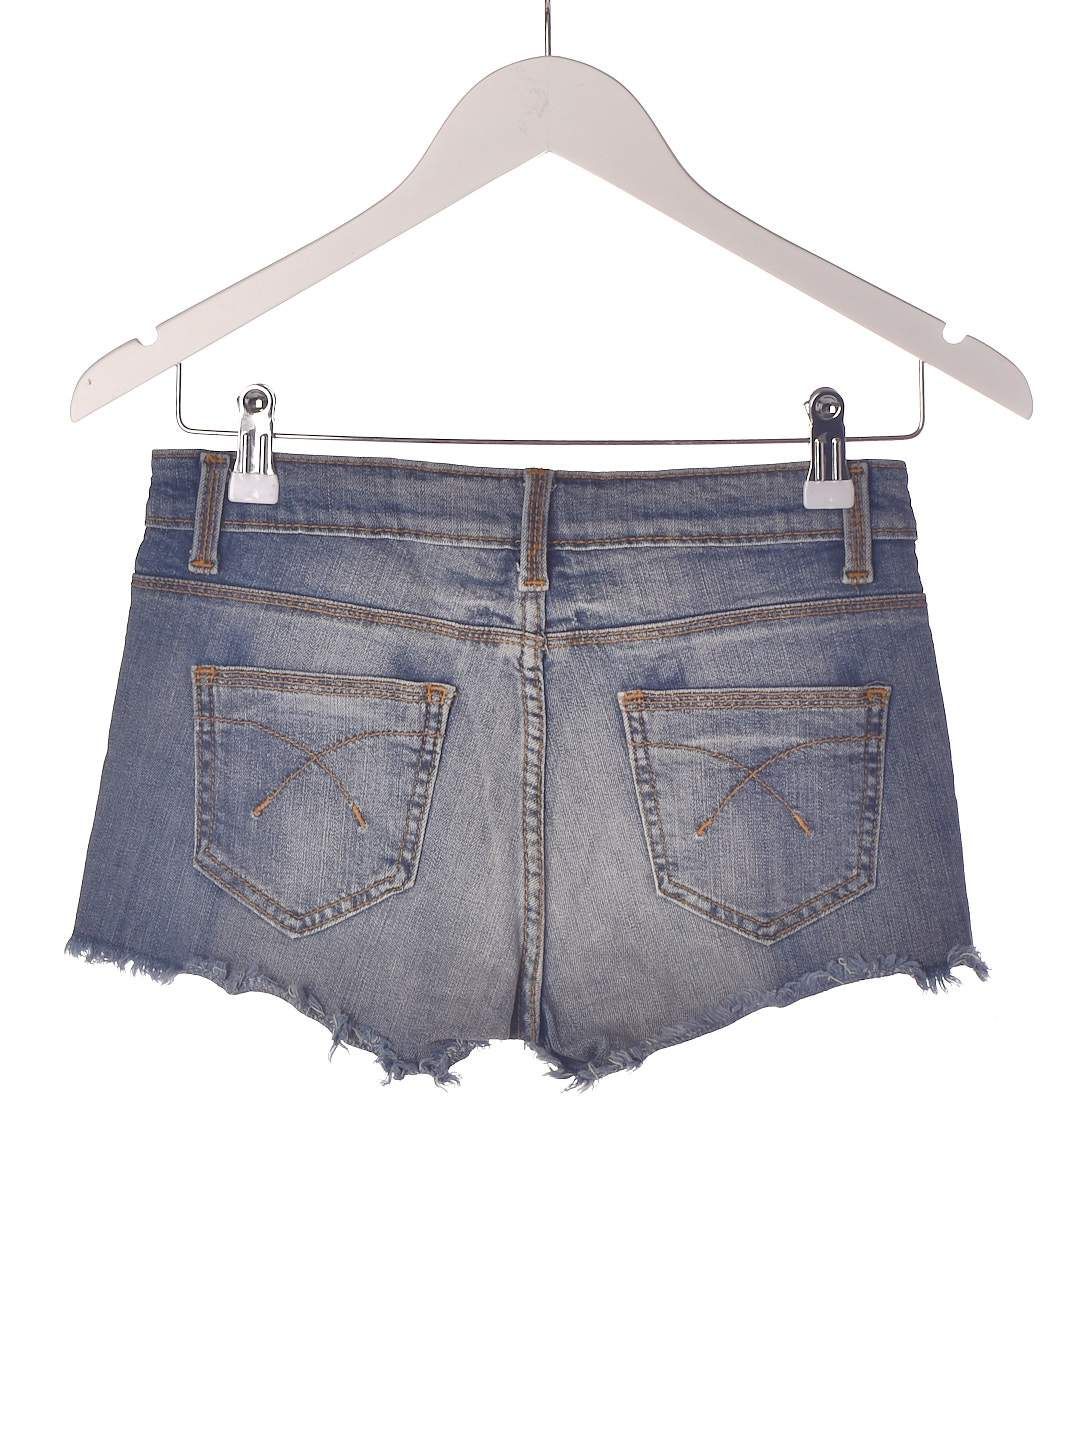 Super fede cowboy shorts